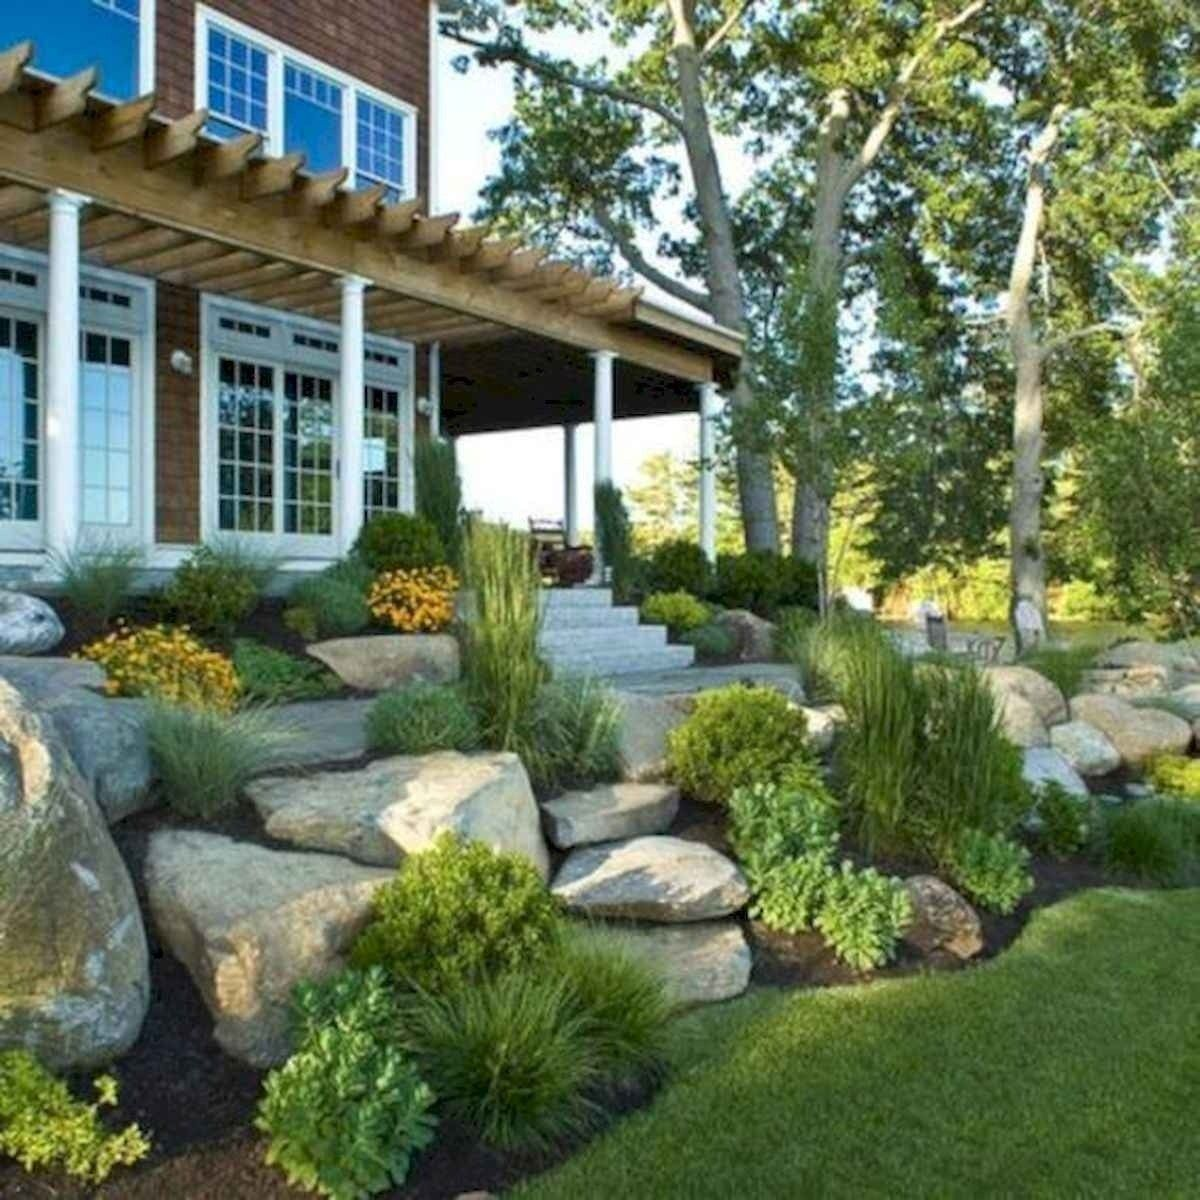 40 Cool Front Yard Garden Landscaping Design Ideas And Remodel Landscaping With Rocks Small Front Yard Landscaping Rock Garden Landscaping Small farmhouse backyard ideas